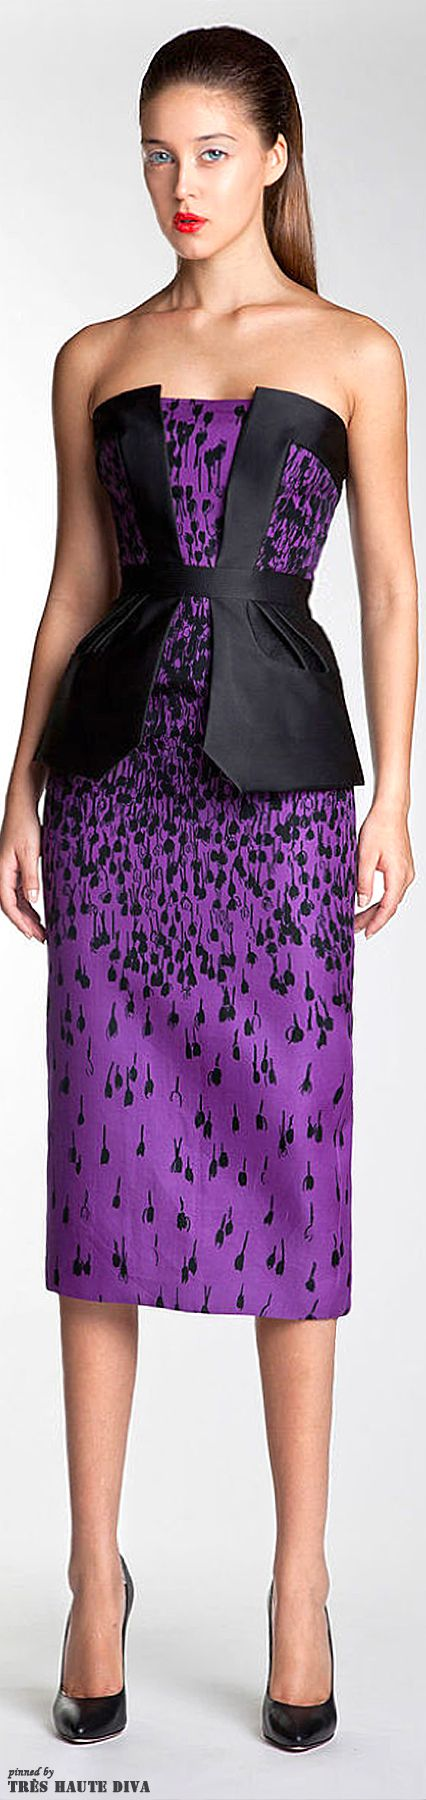 This dress looks like it has sperm all over it! Lol